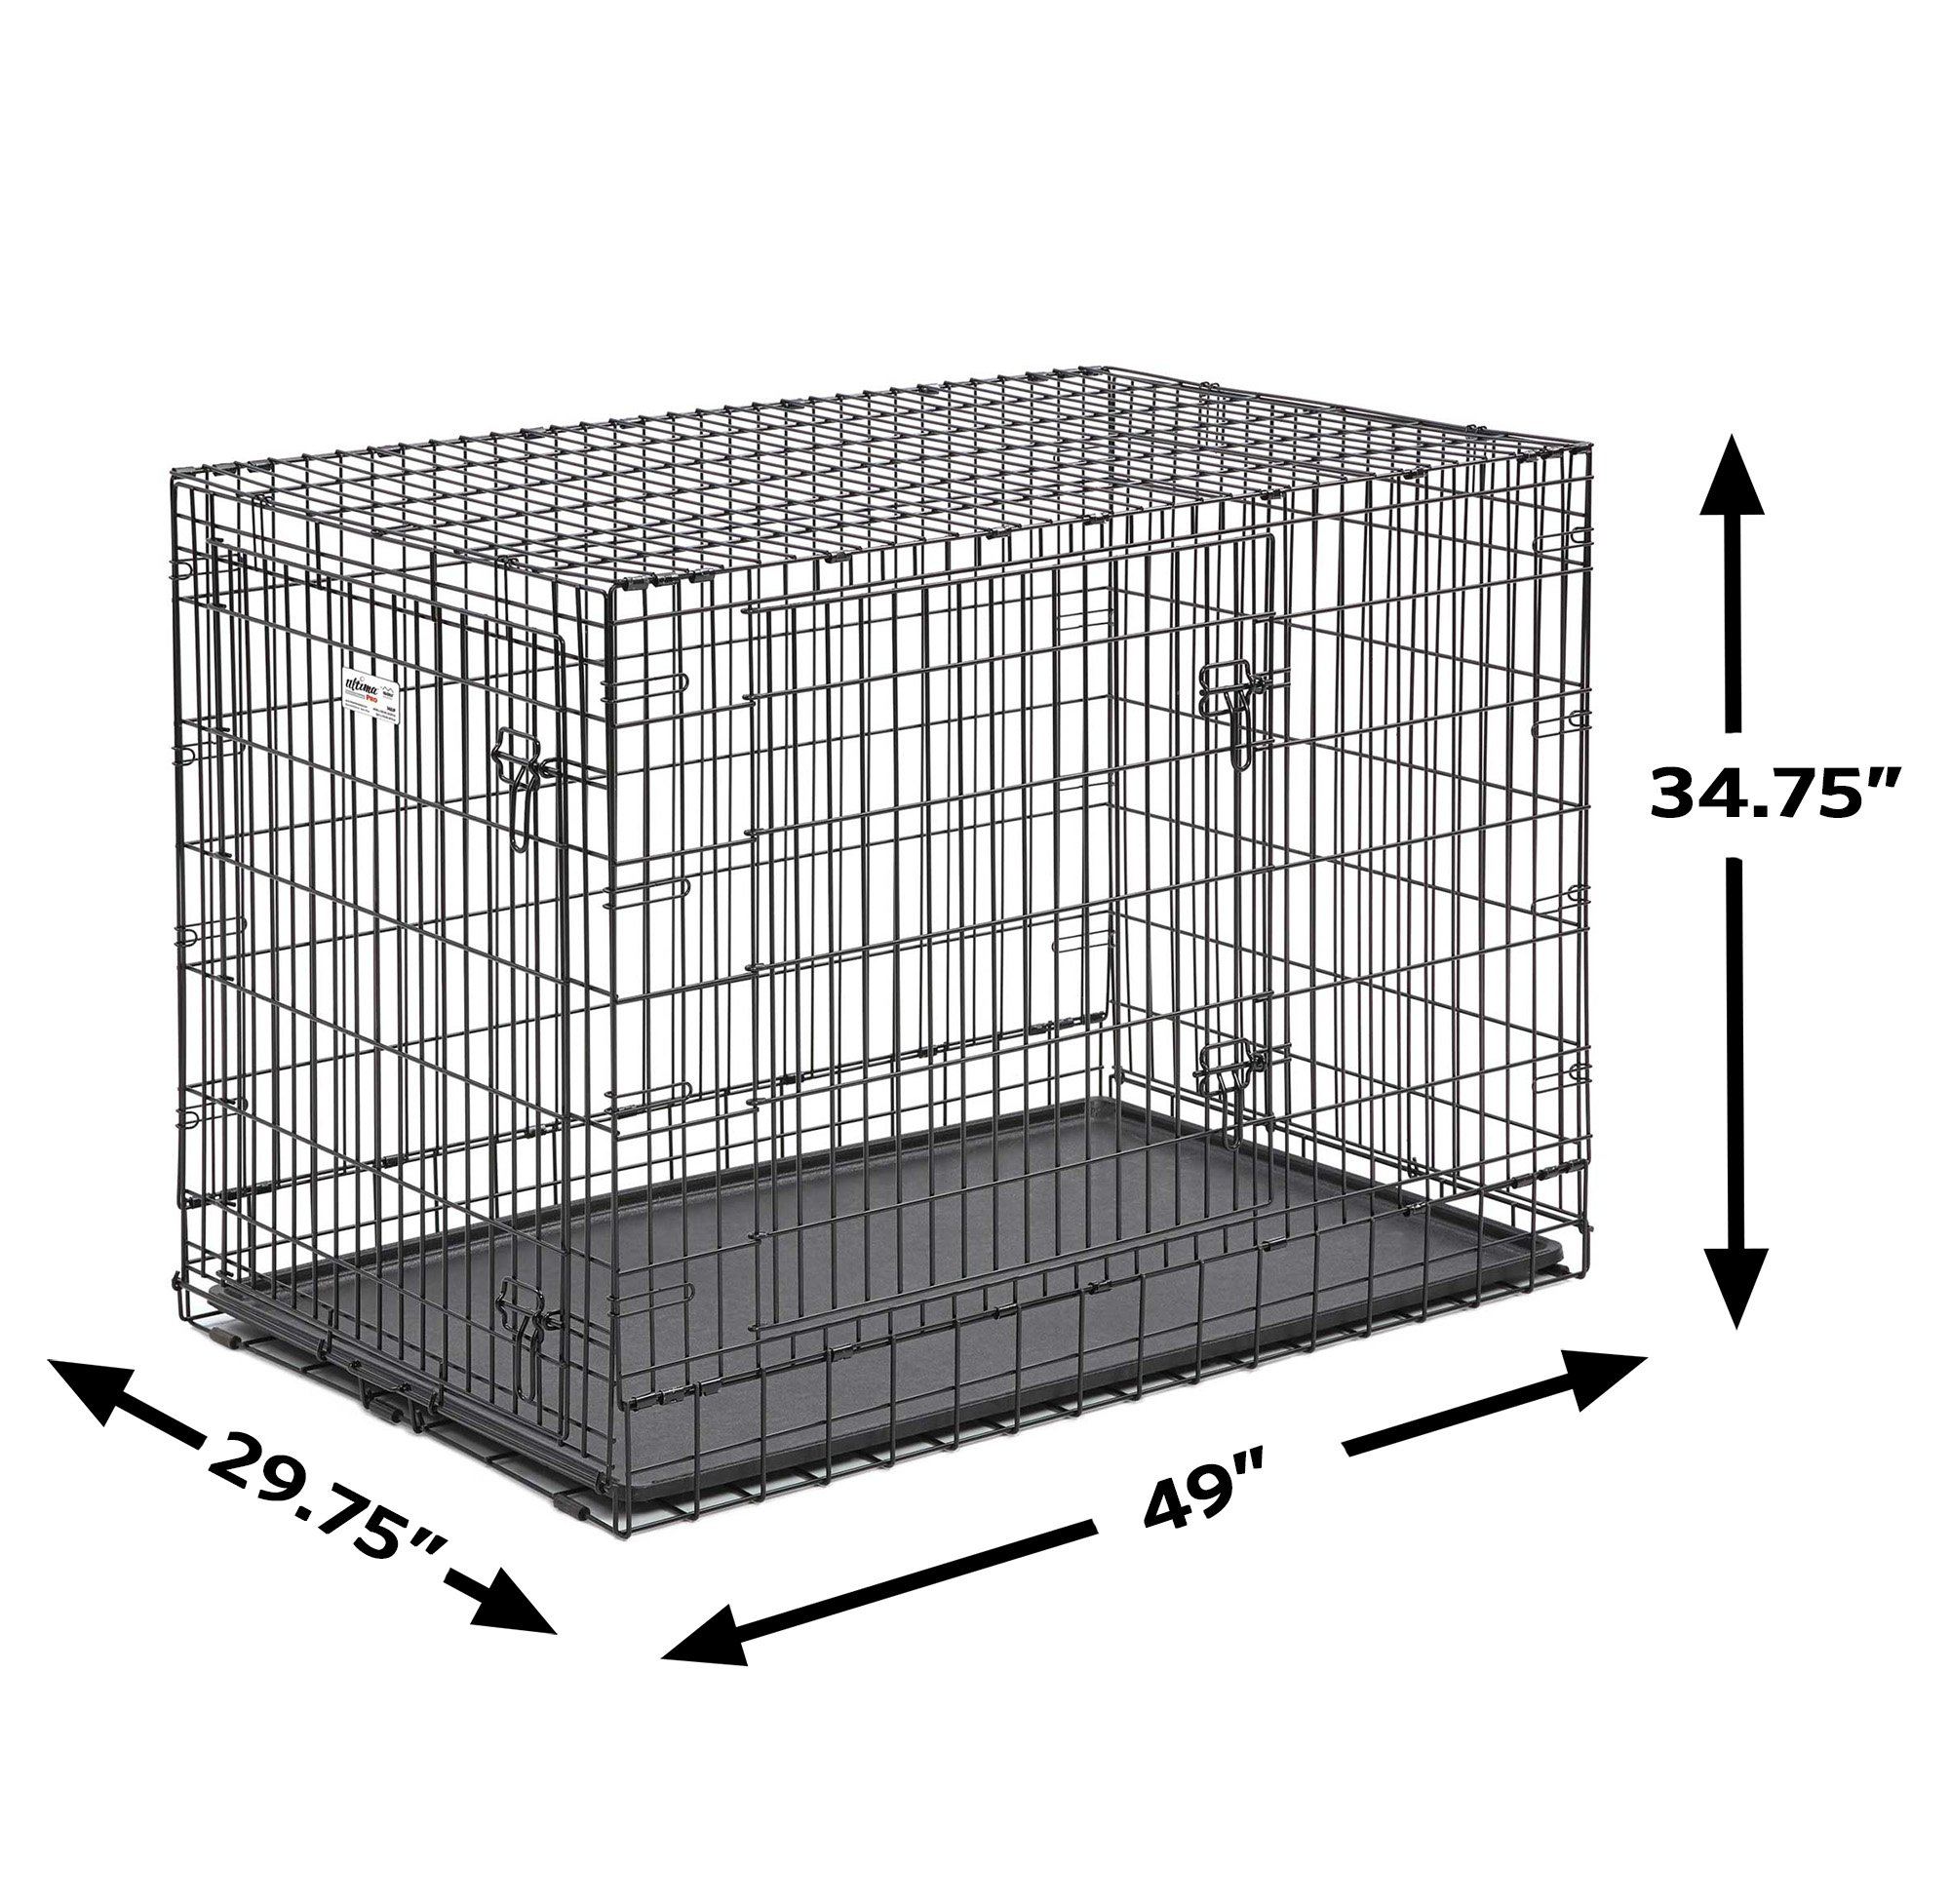 MidWest Ultima Pro (Professional Series & Most Durable Dog Crate) | Extra-Strong Double Door Folding Metal Dog Crate w/Divider Panel, Floor Protecting ''Roller Feet'' & Leak-Proof Plastic Pan by MidWest Homes for Pets